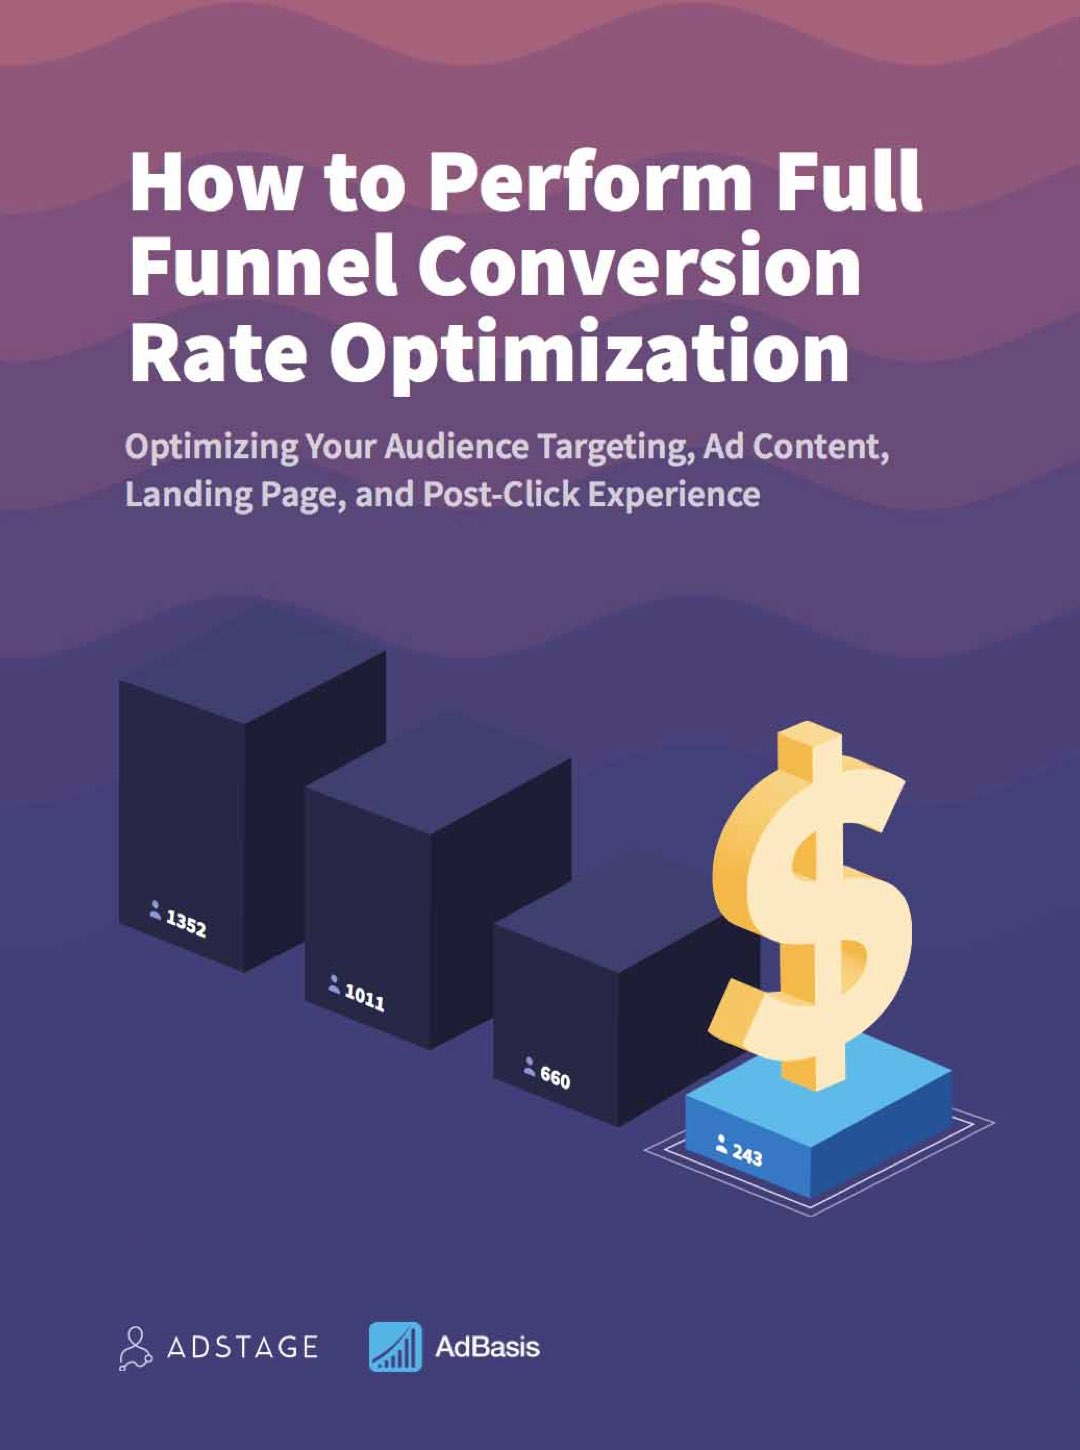 How to Perform Full Funnel Converstion Rate Optimization